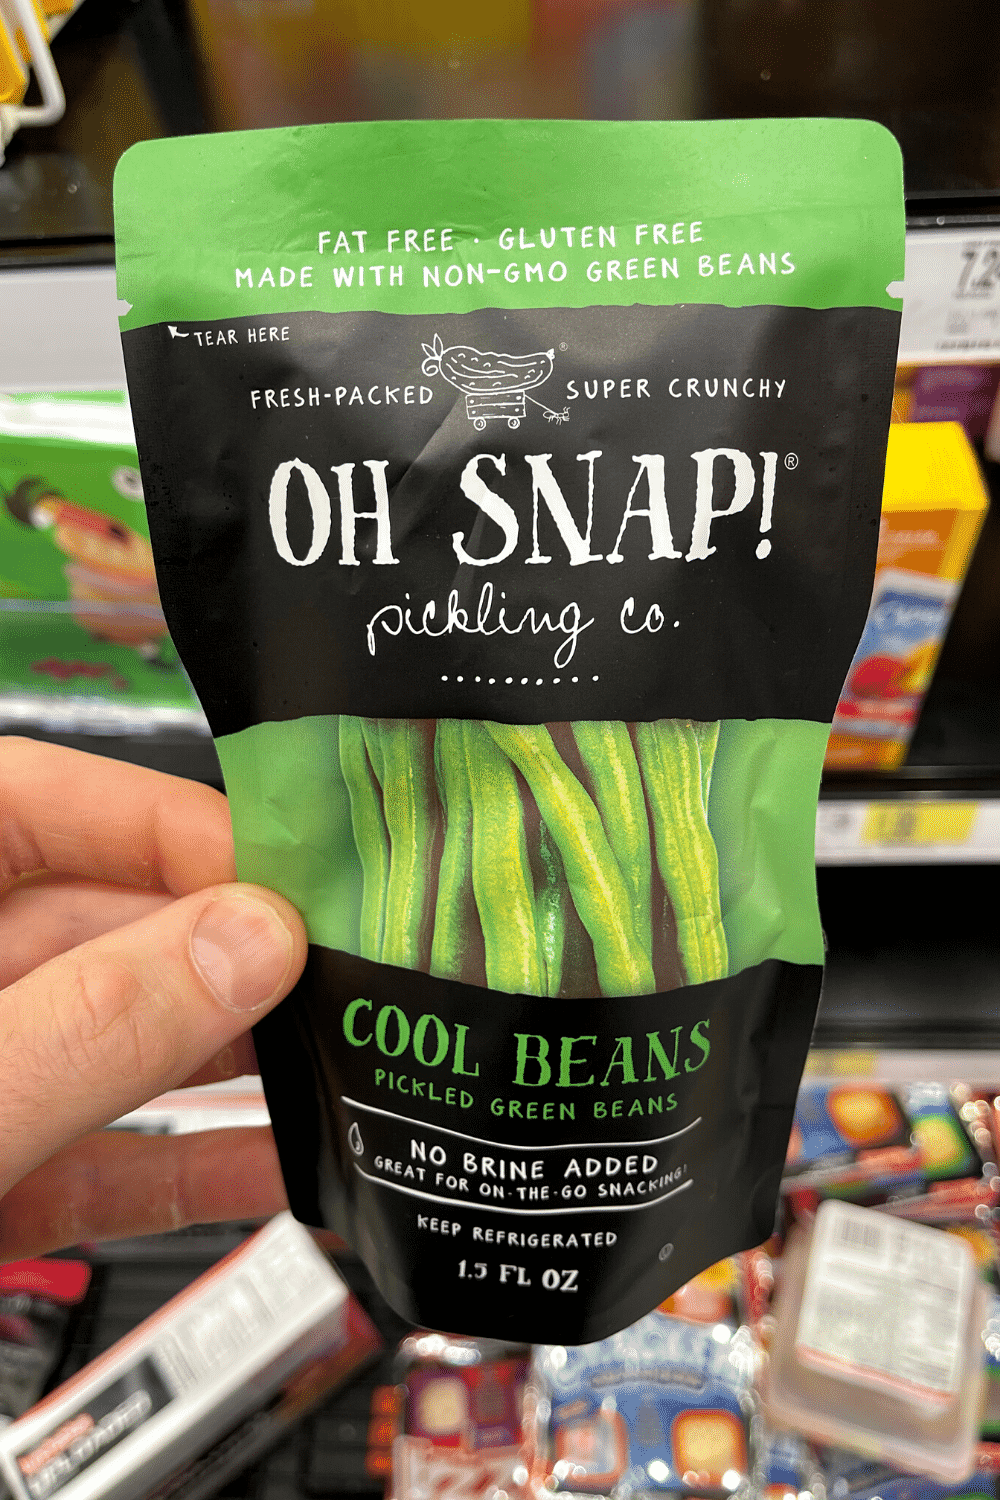 A hand holding a bag of pickled green beans.